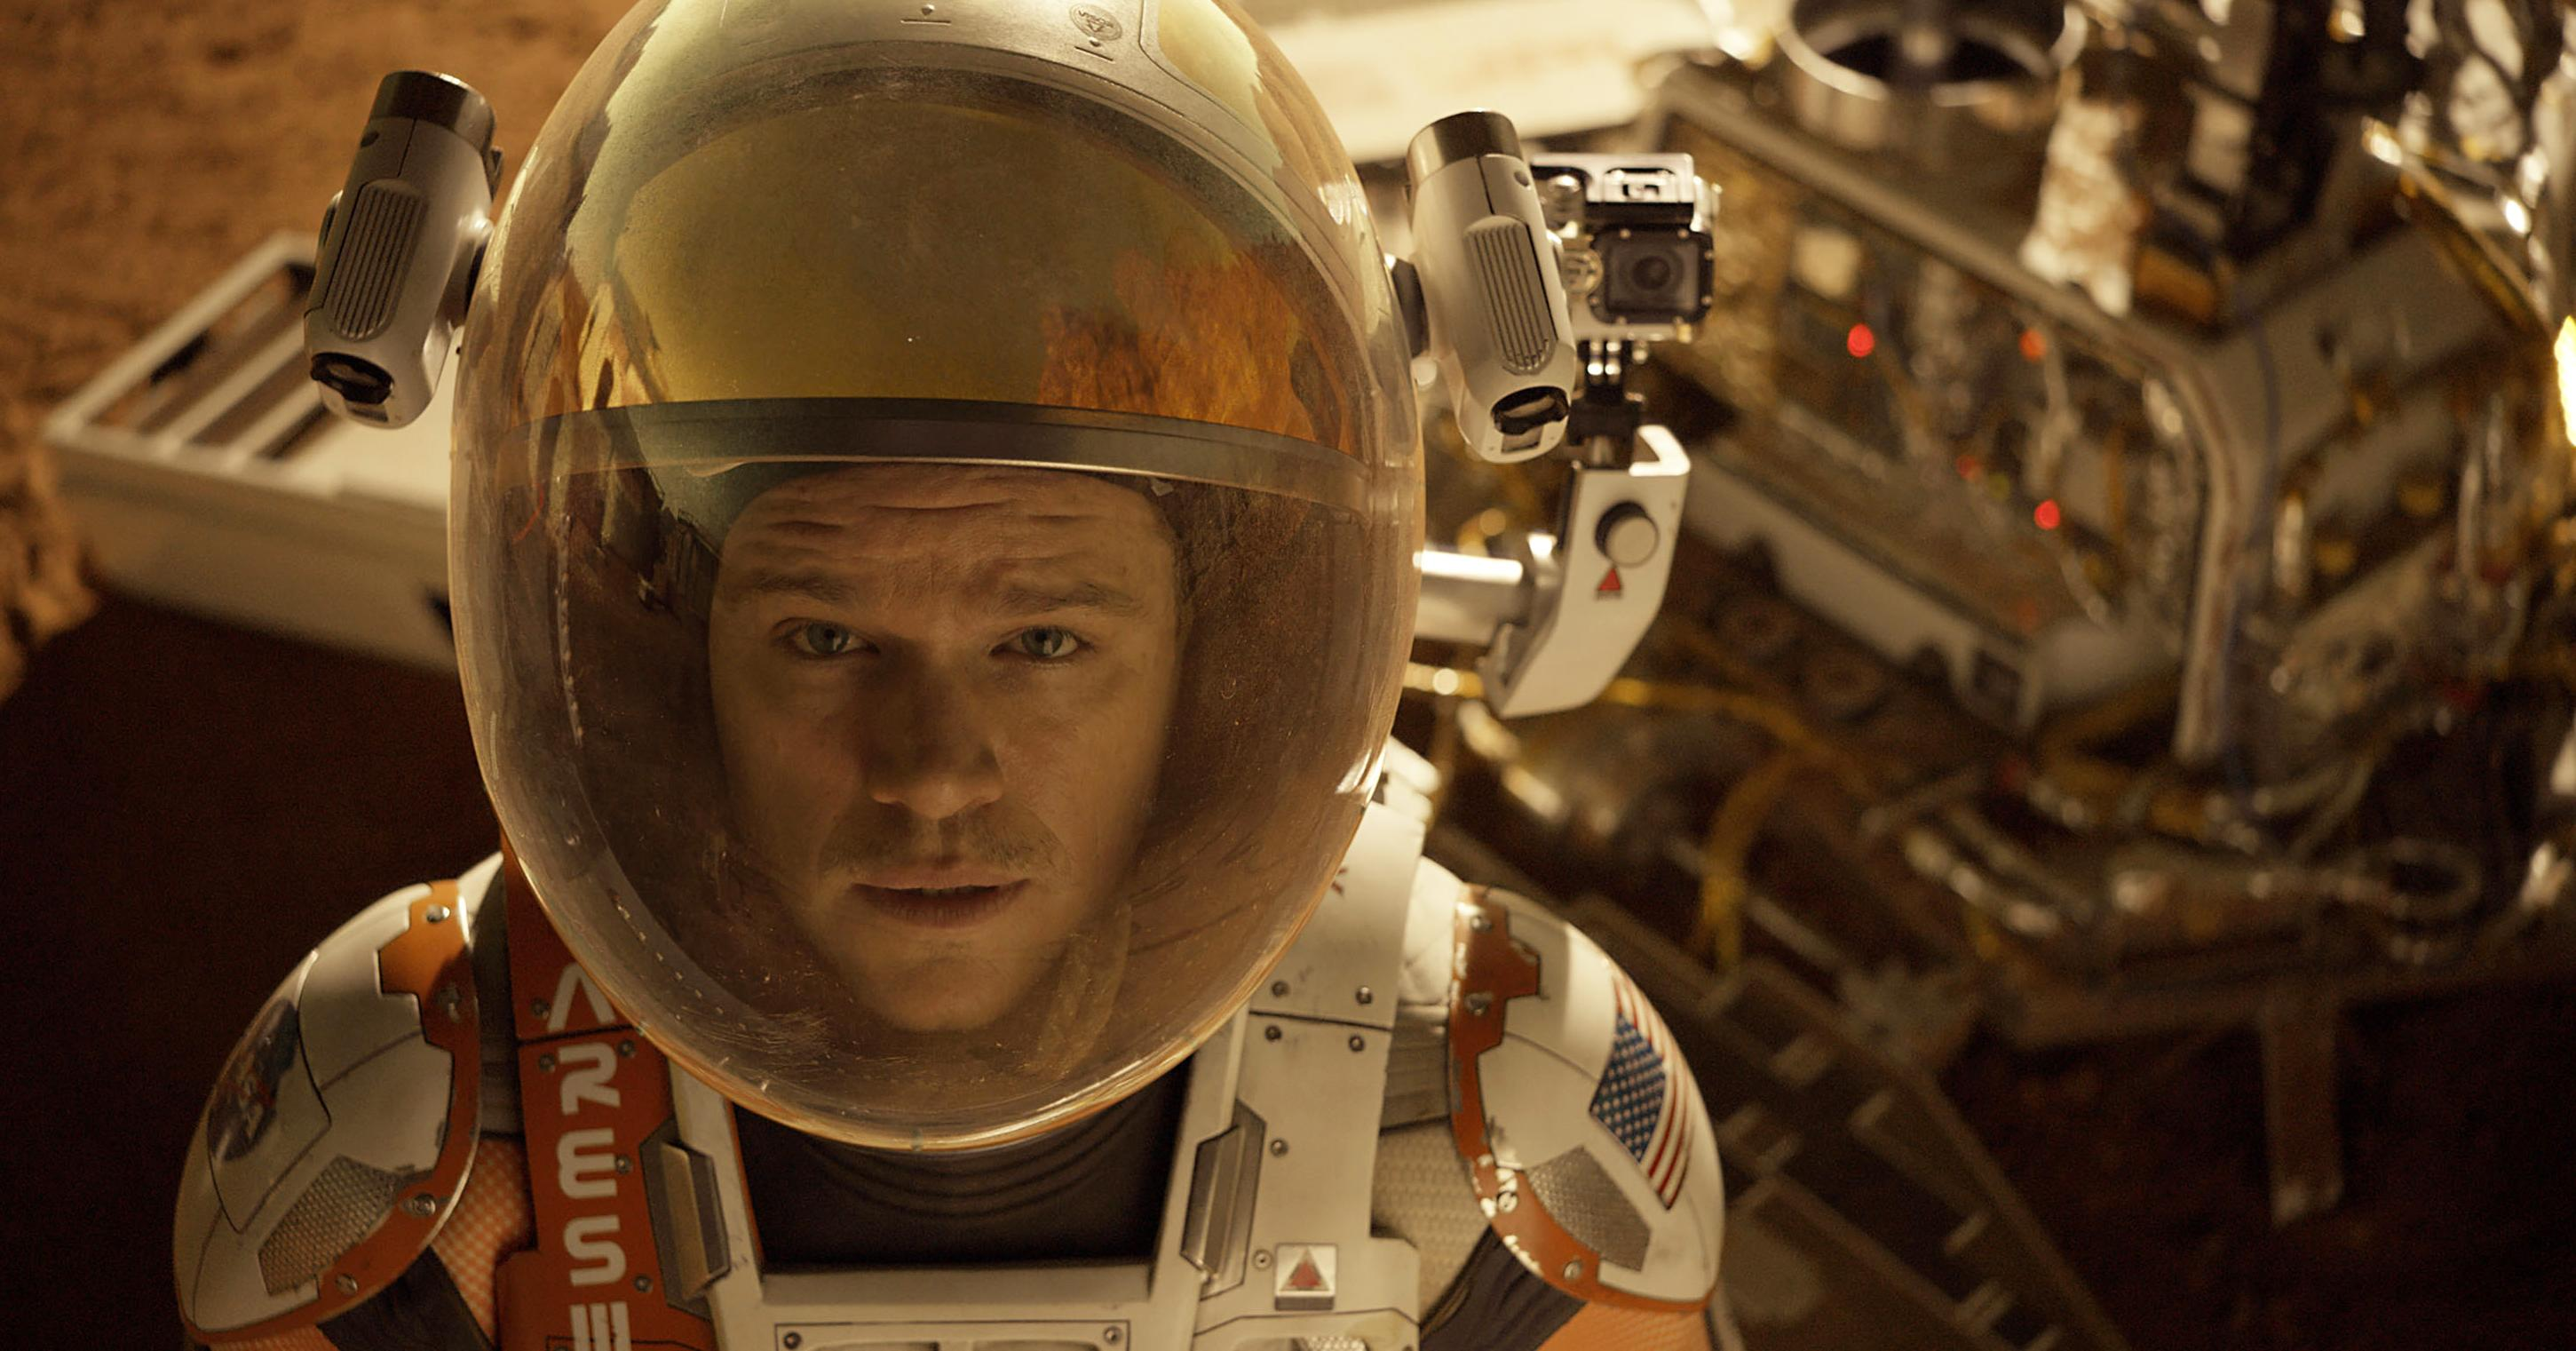 Science sells: 'The Martian' lands with $55 million debut